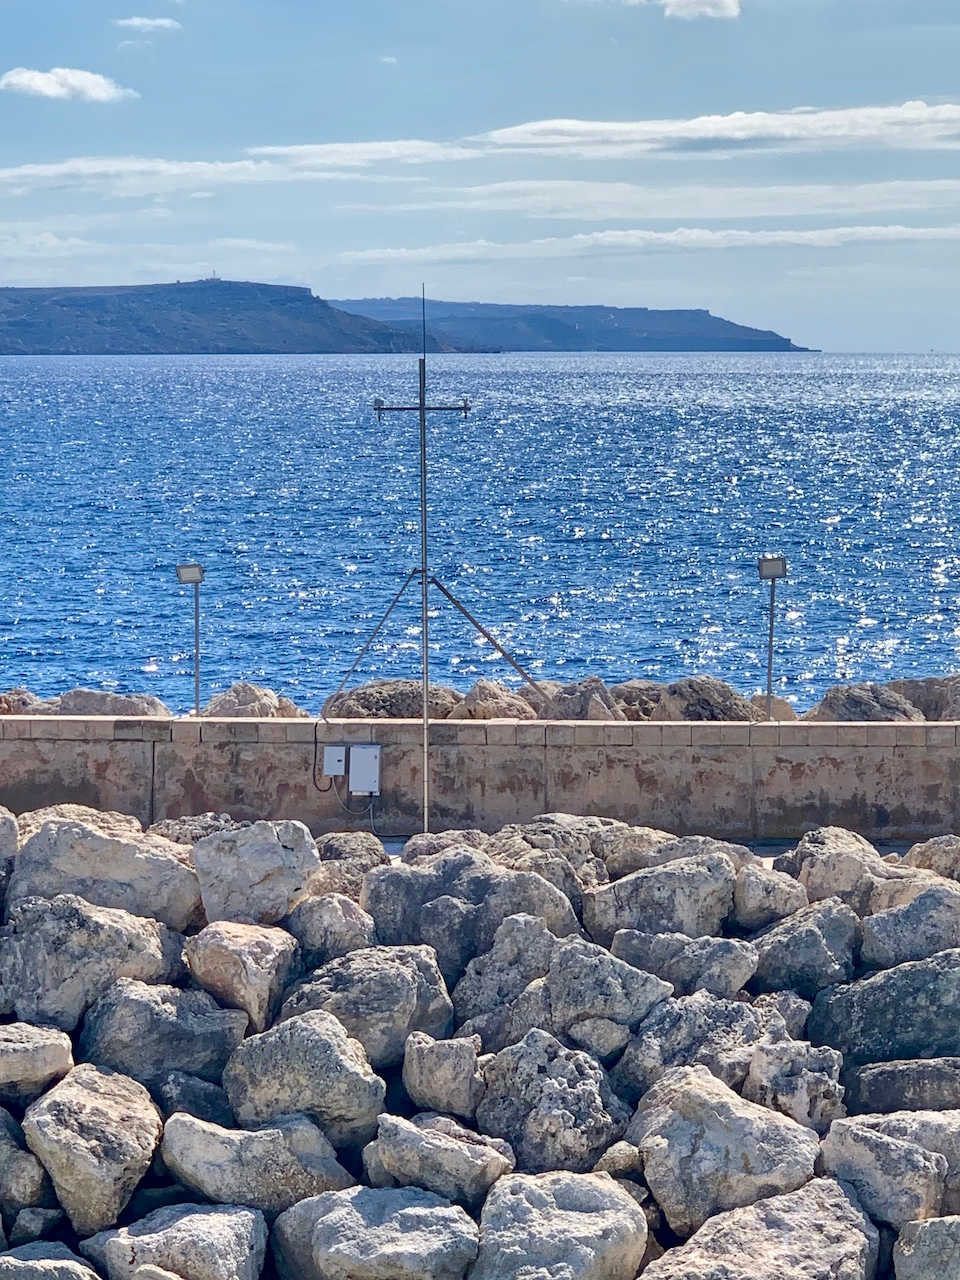 Meteo                                          station at the end of the breakwater in                                          the Port of Mġarr.